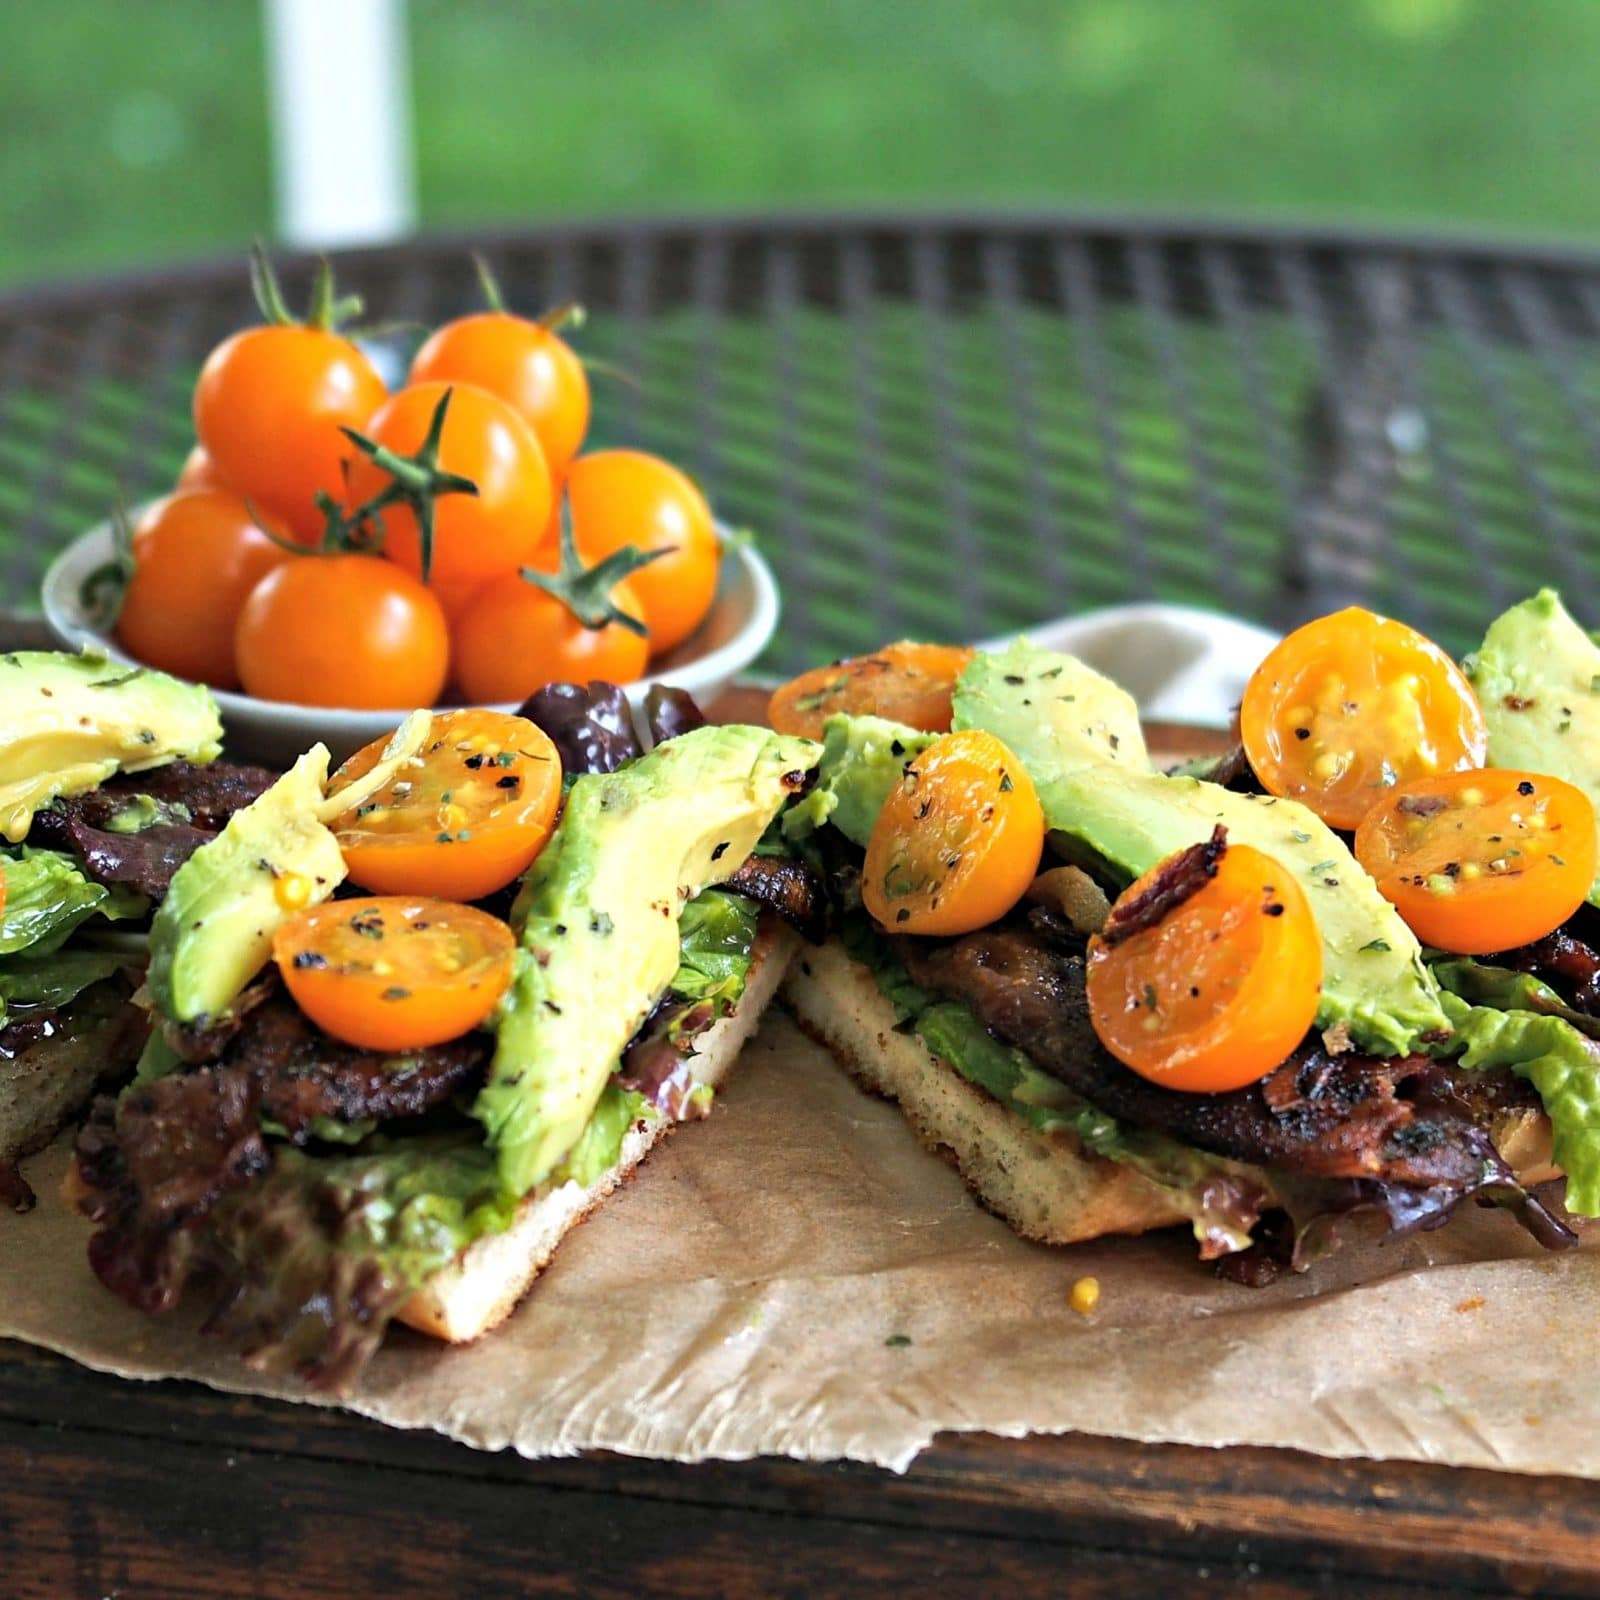 Perfect BLT with Sweet Spicy Bacon & Avocado. Yes, THE perfect BLT with sweet, spicy bacon and avocados. After one bite, you will think you are in Heaven. Simply Sated